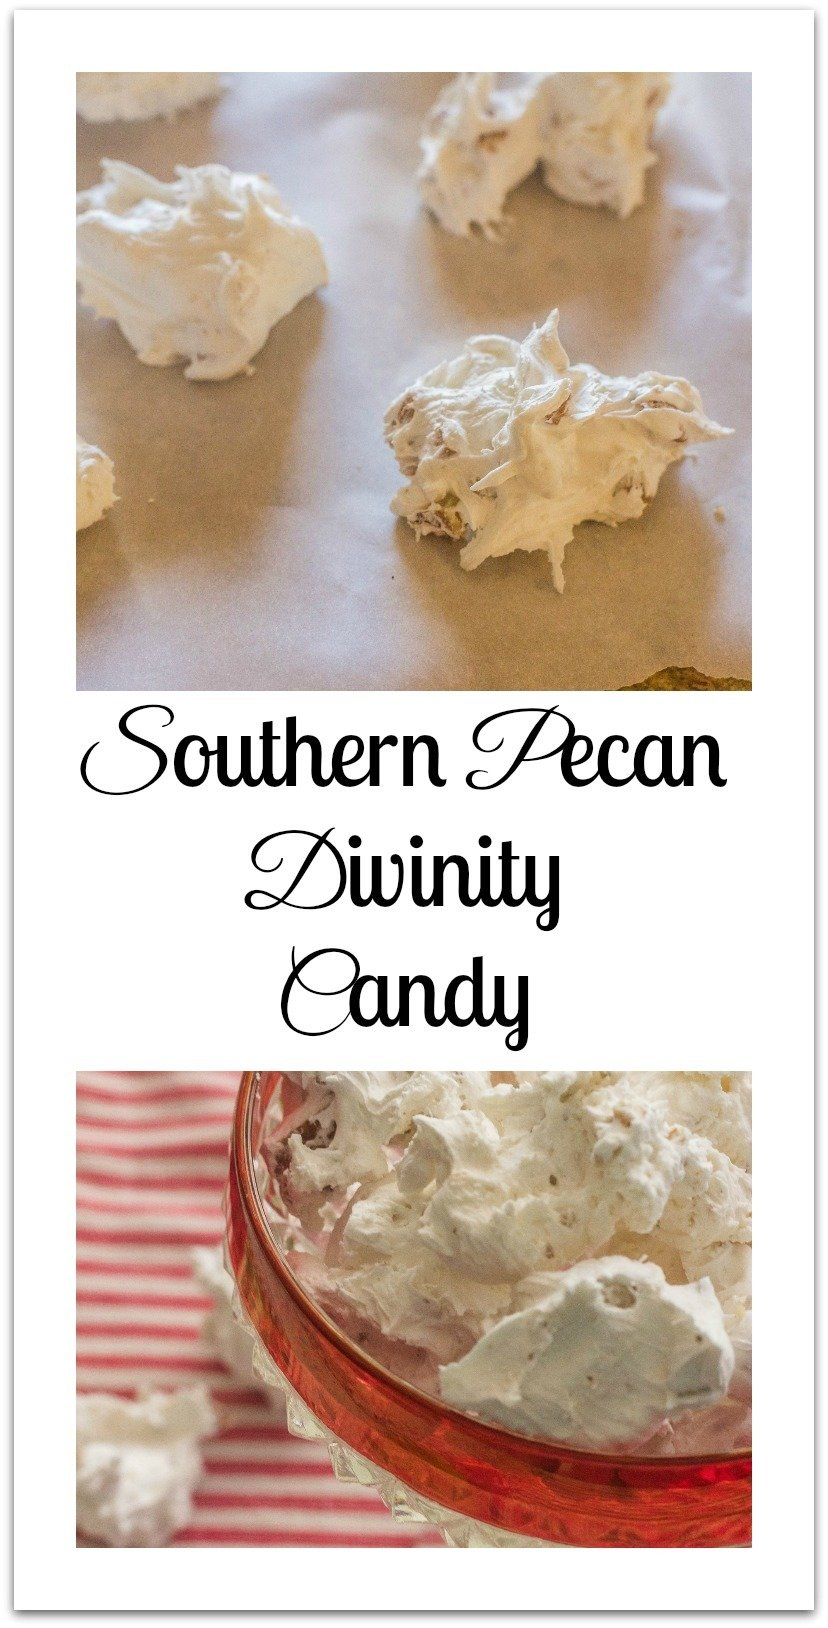 I don't recall exactly how the conversation came about, but as a new bride, I discovered that my husband loves Southern Pecan  Divinity Candy.  Divinity is a traditional  nougat-like Southern candy made with vanilla and pecans. #DivinityCandy #PecanCandy #SouthernCandy